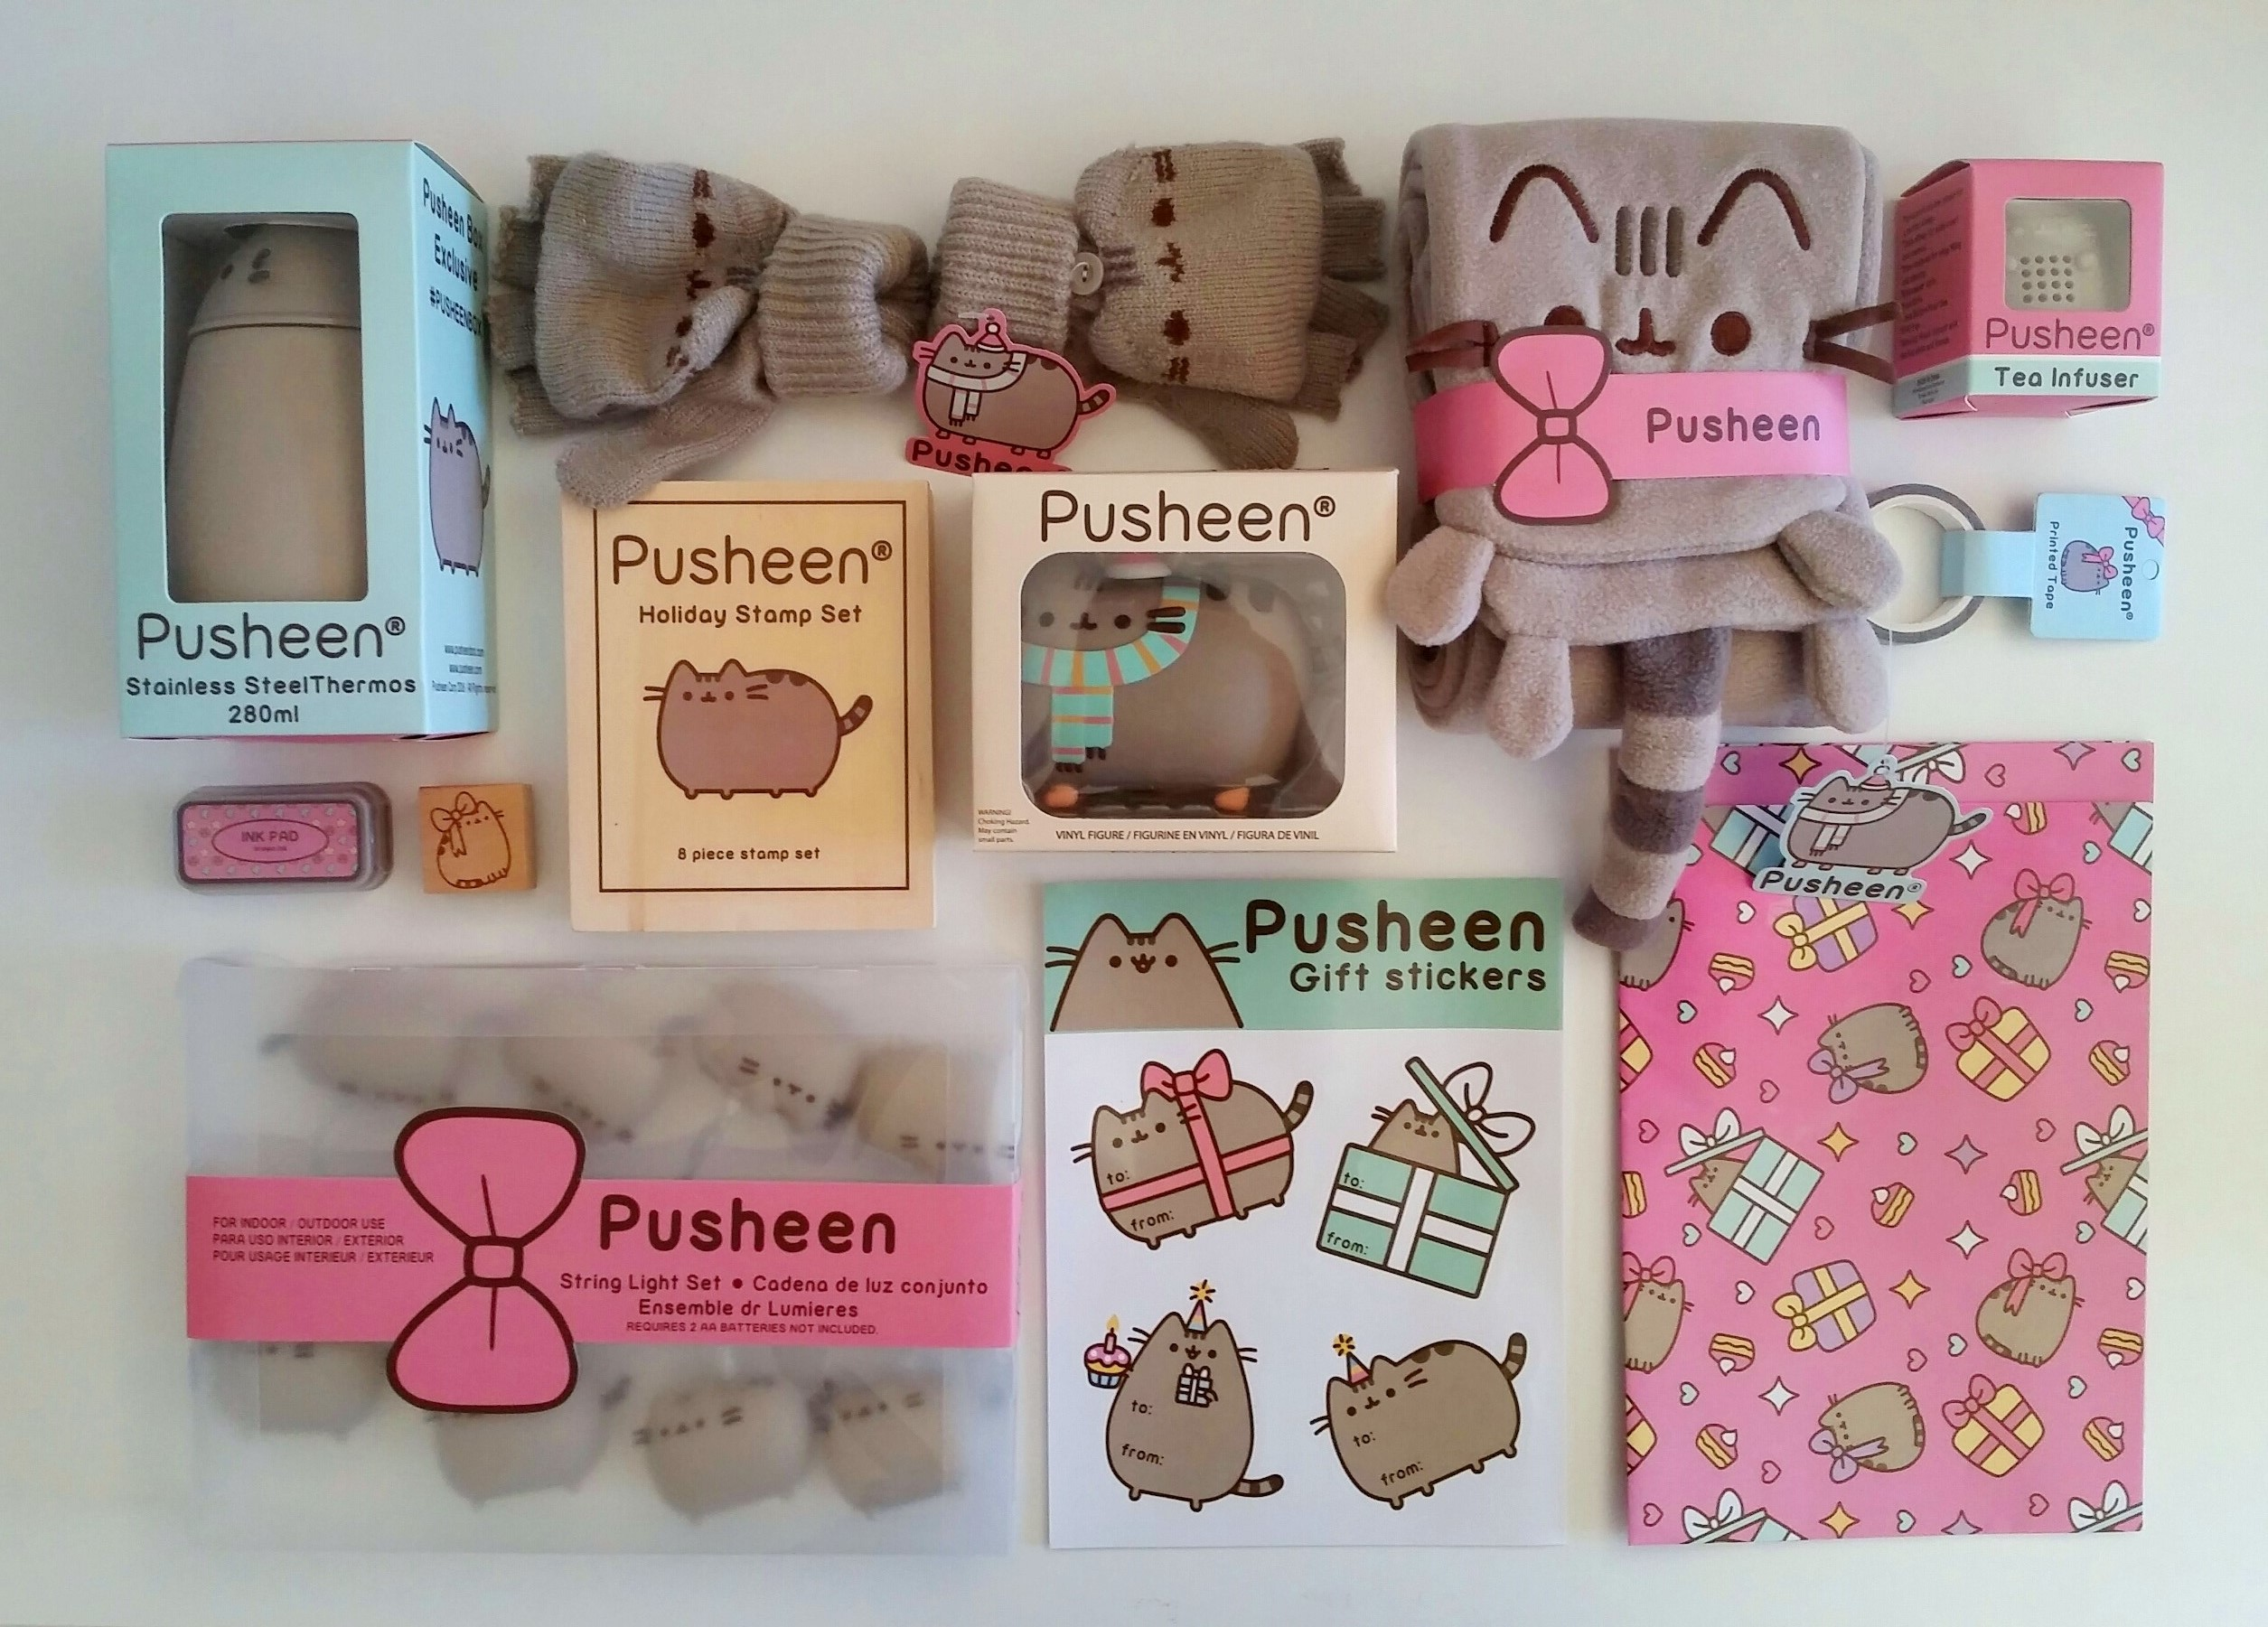 Pusheen Box Winter 2016 Dreamingofcats